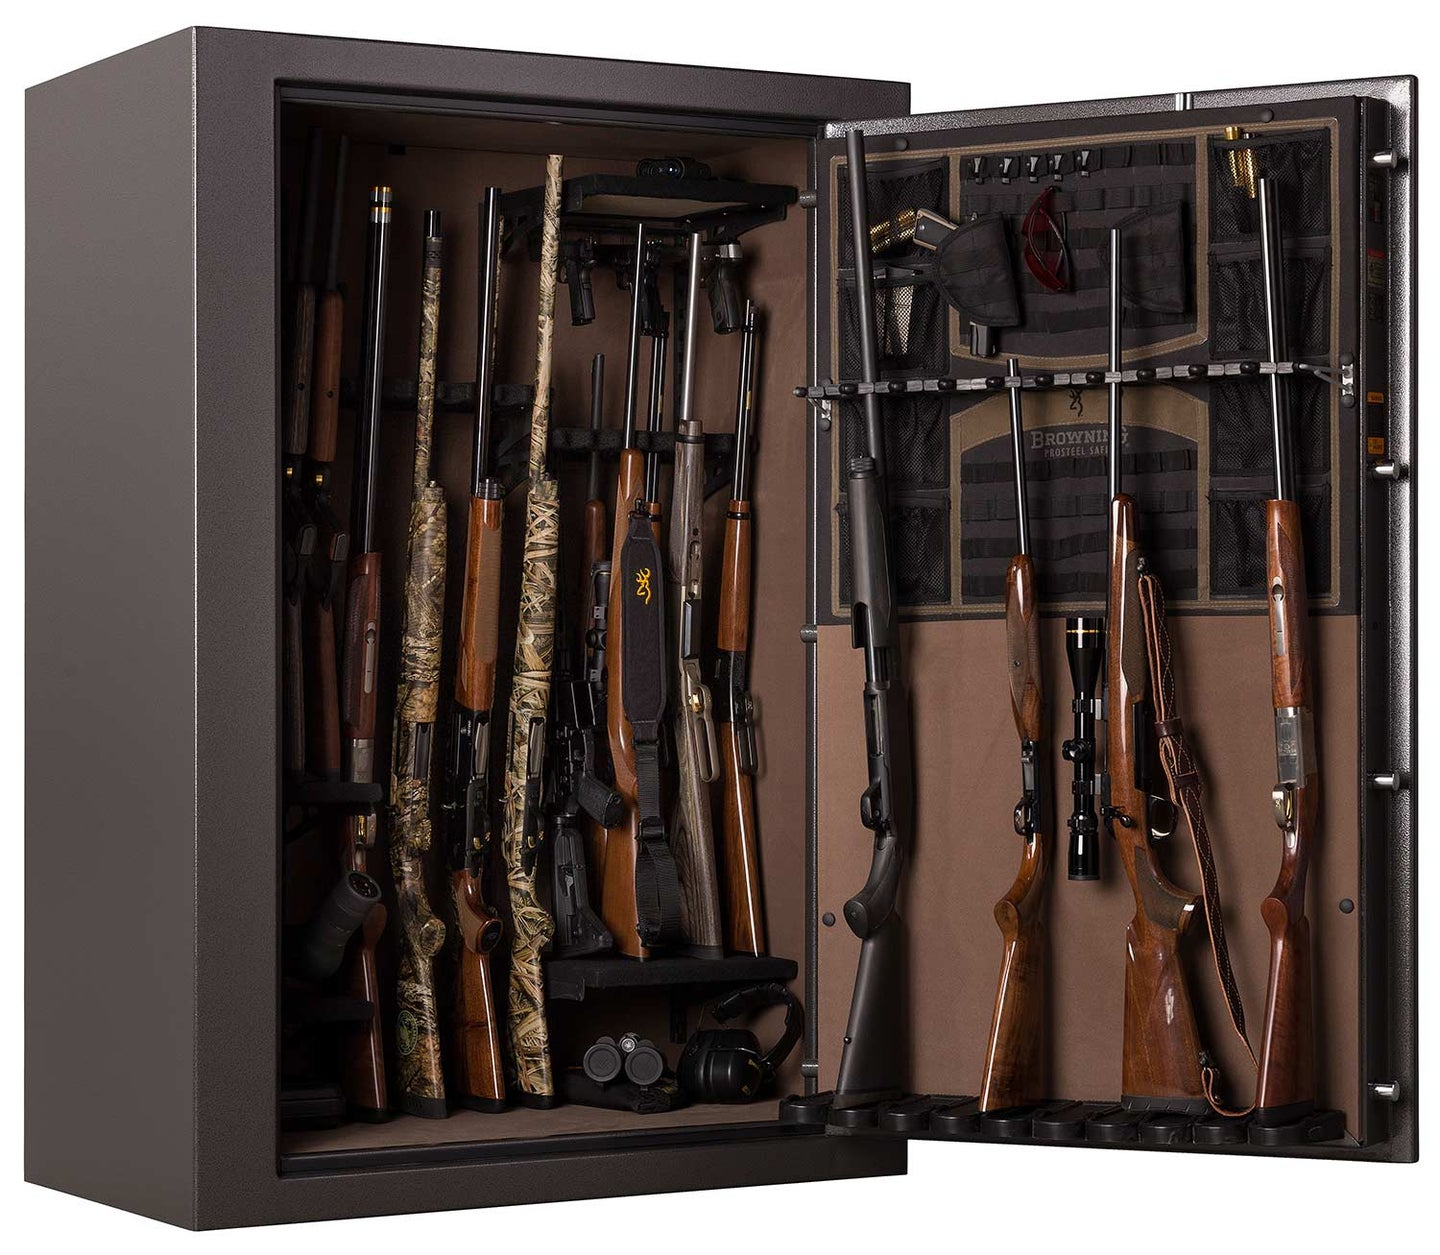 What Should I Look for When Buying a Gun Safe?